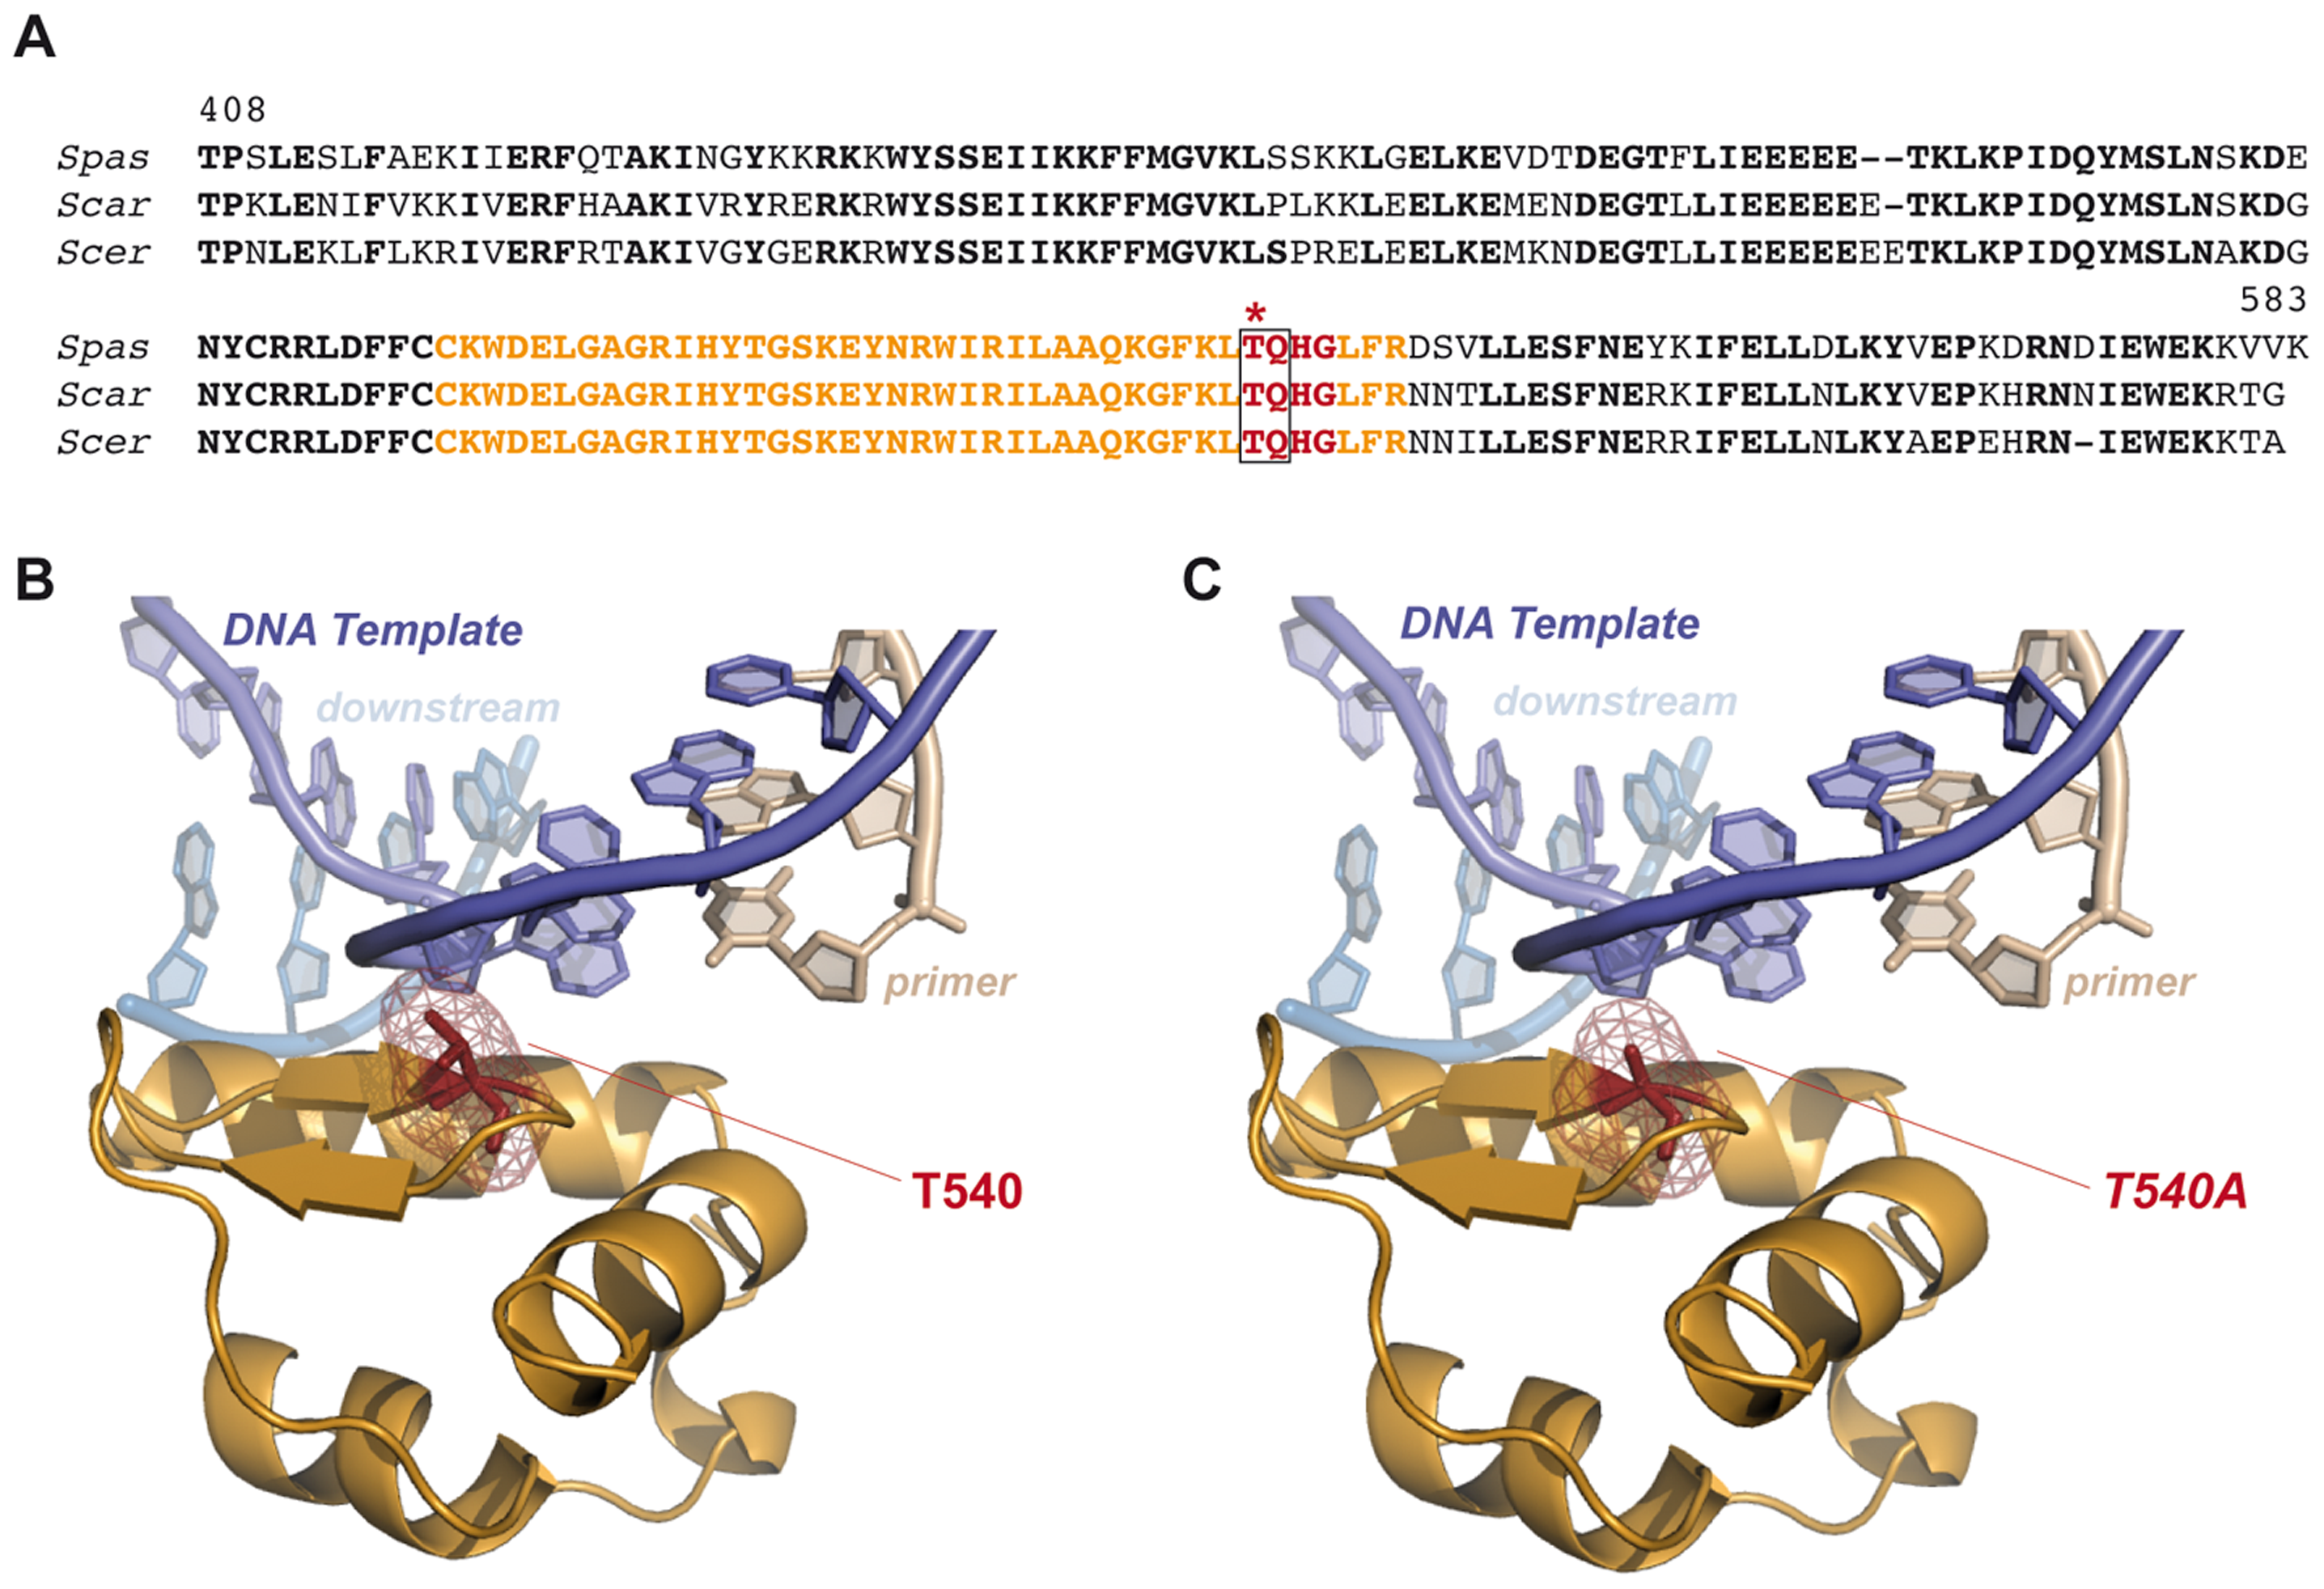 Modeling consequences of Tel1-mediated Pol4 phosphorylation at Thr<sup>540</sup> amino acid residue during NHEJ.